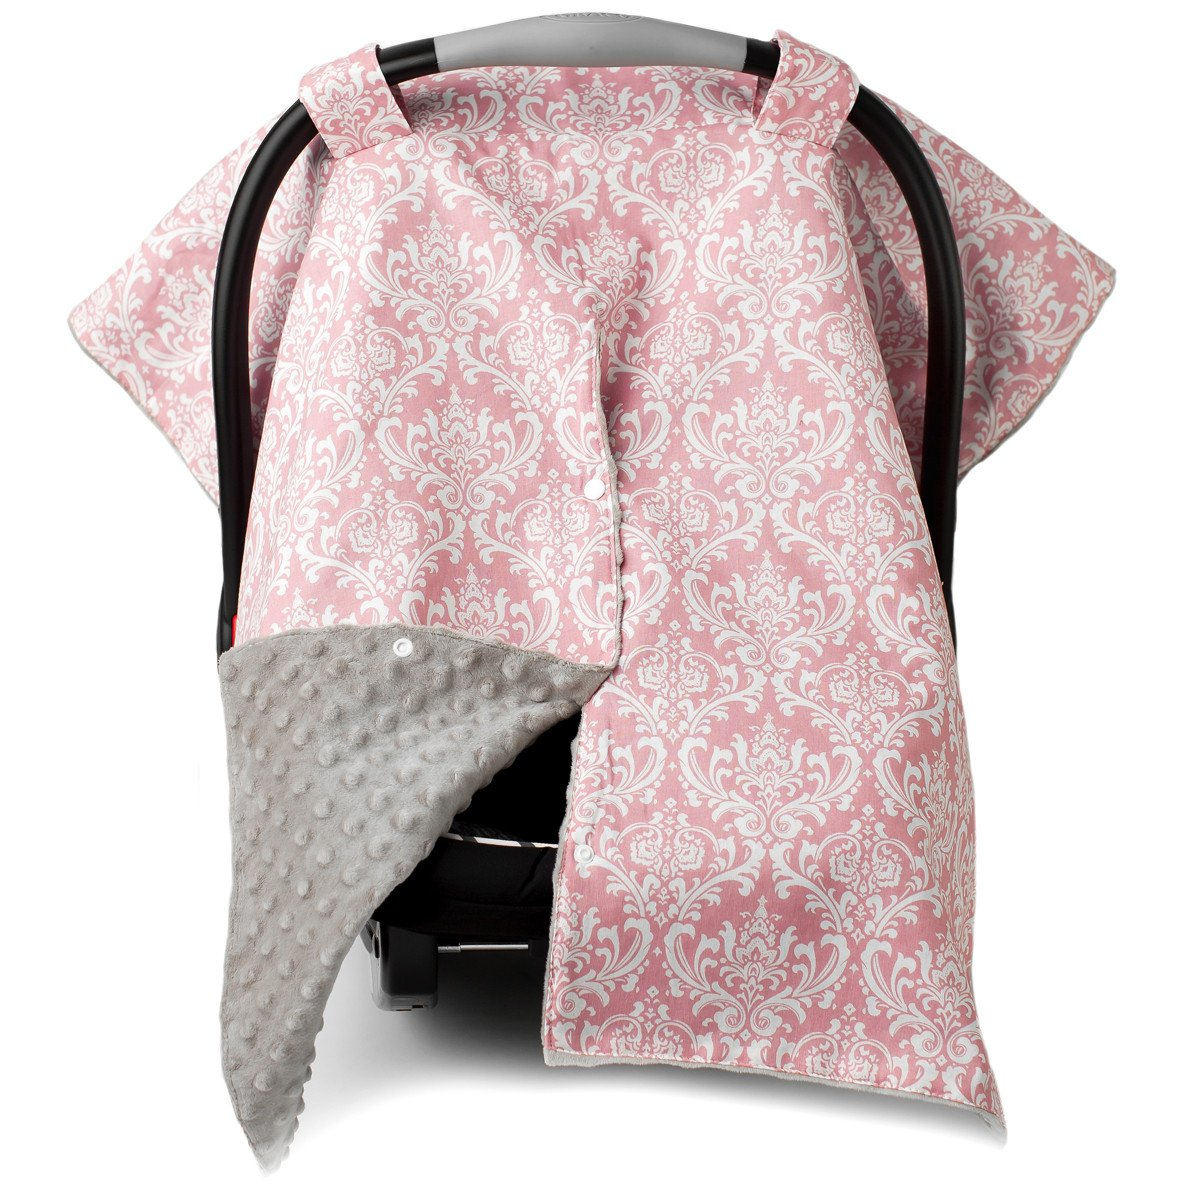 Kids N' Such 2 in 1 Car Seat Canopy Cover with Peekaboo Opening™ - Large Damask Carseat Cover with Champagne Dot Minky | Best for Baby Girls | Doubles as a Nursing Cover for Breastfeeding